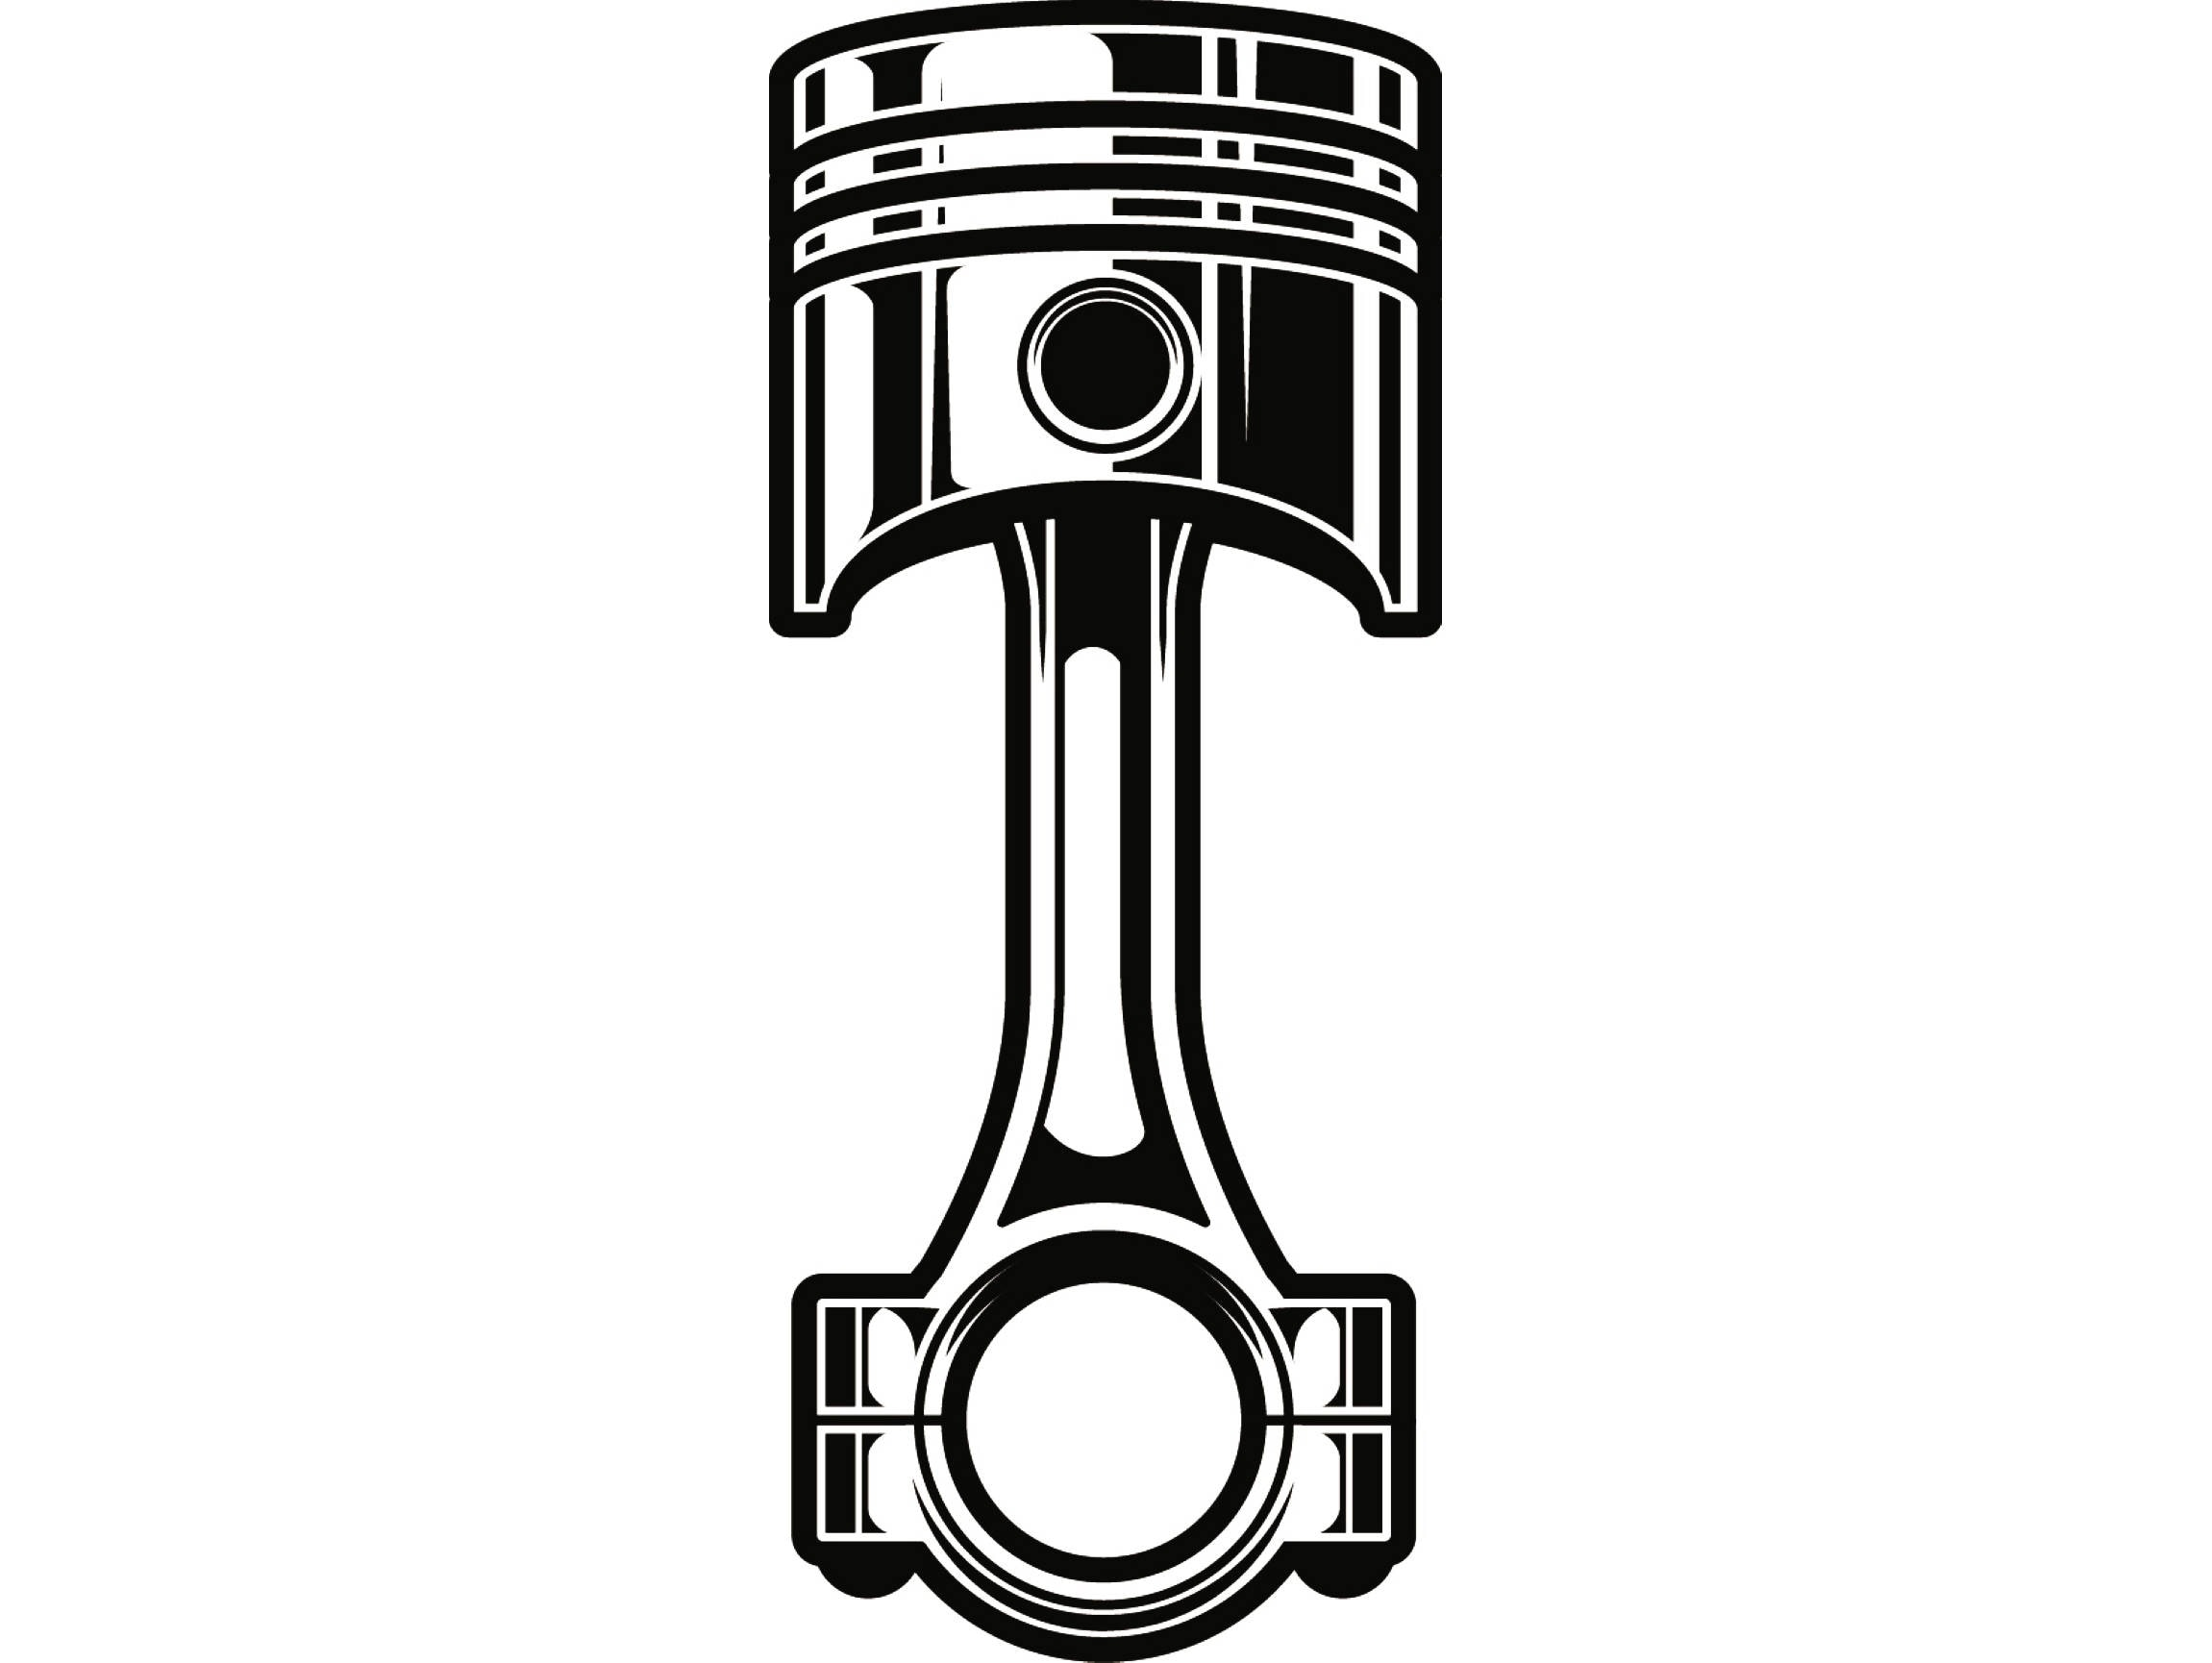 piston 6 chrome engine car vehicle auto part cylinder biker paypal verified logo vector paypal logo vector file